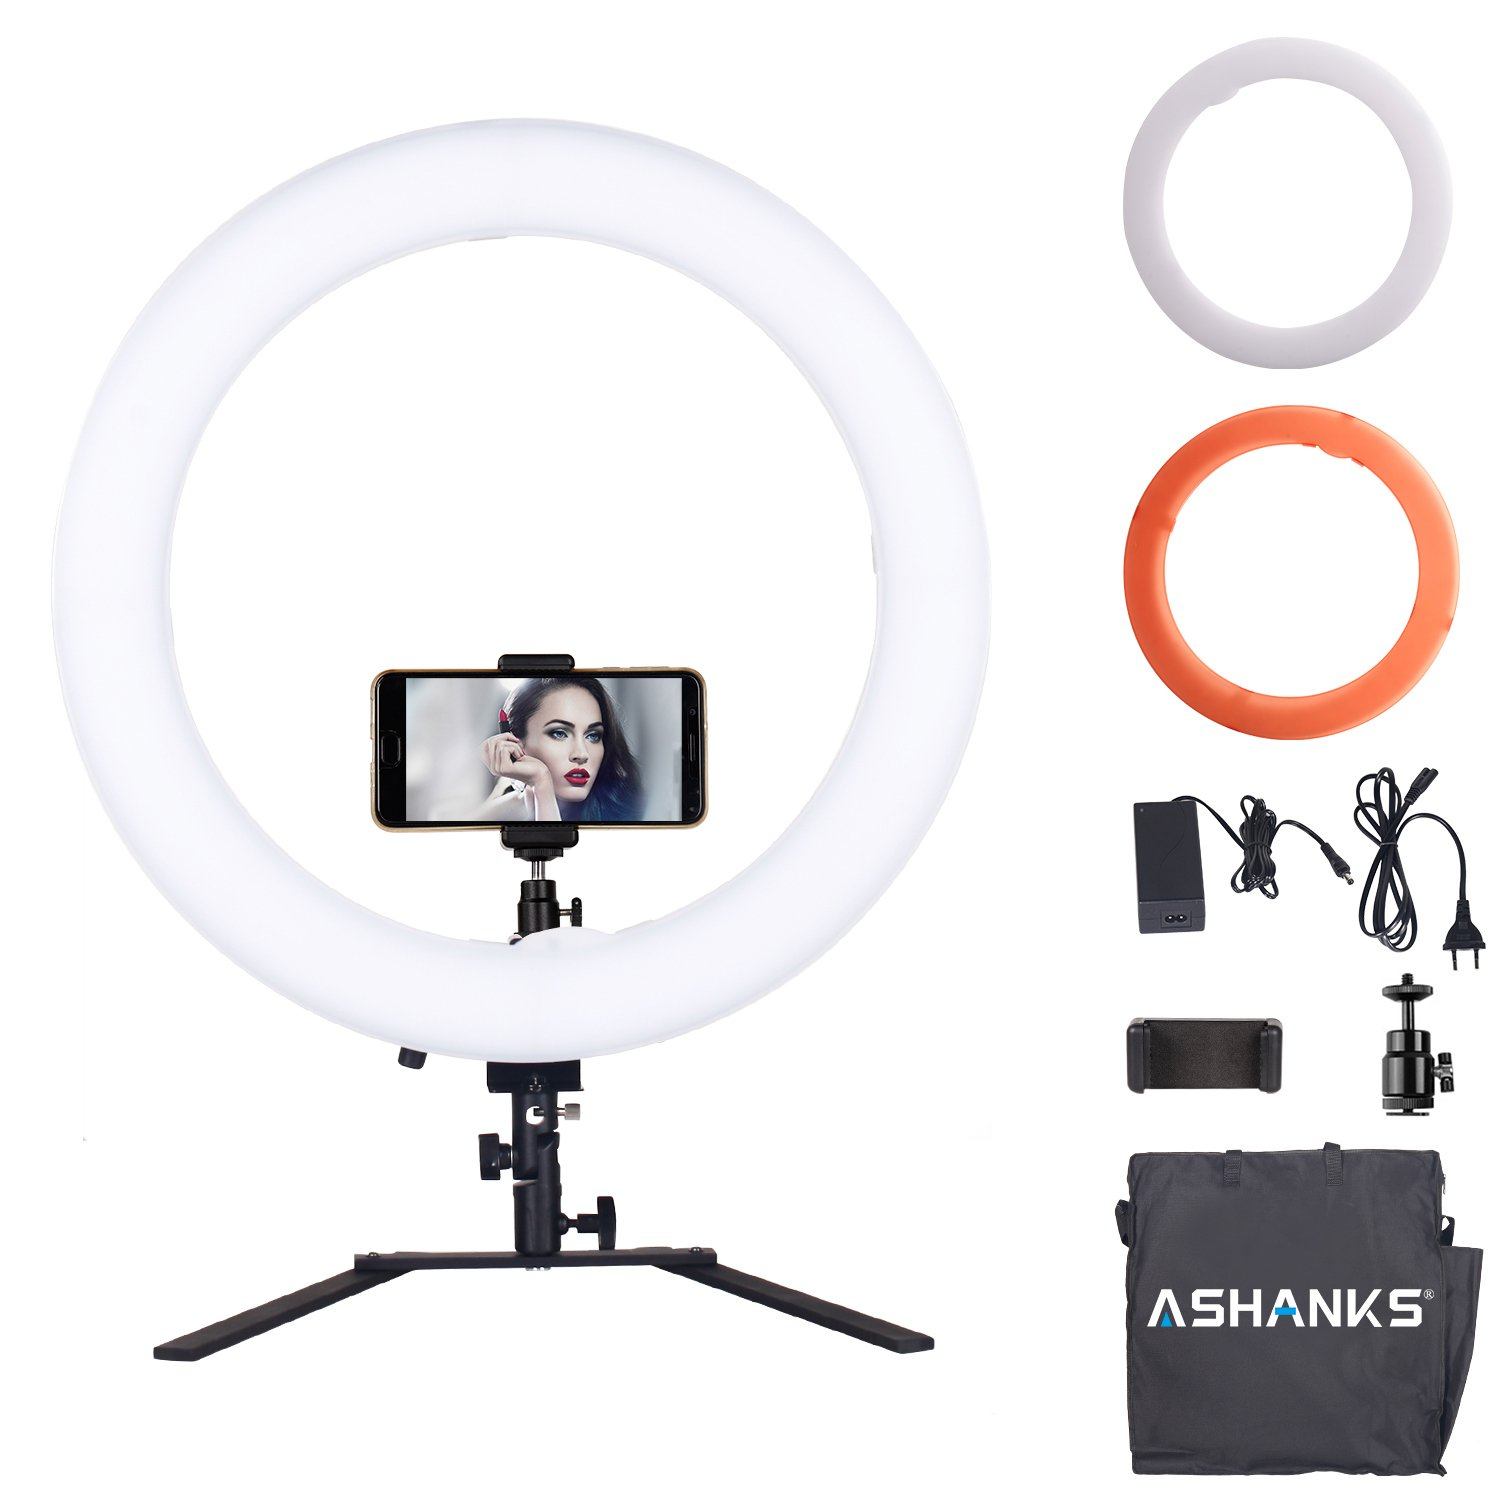 ASHANKS 18in Dimmable LED Ring Light with Stand Professional Studio Photography 5500K Fluorescent Continuous Light Kit with Phone Holder for Makeup, Camera Photo YouTube Video Shooting